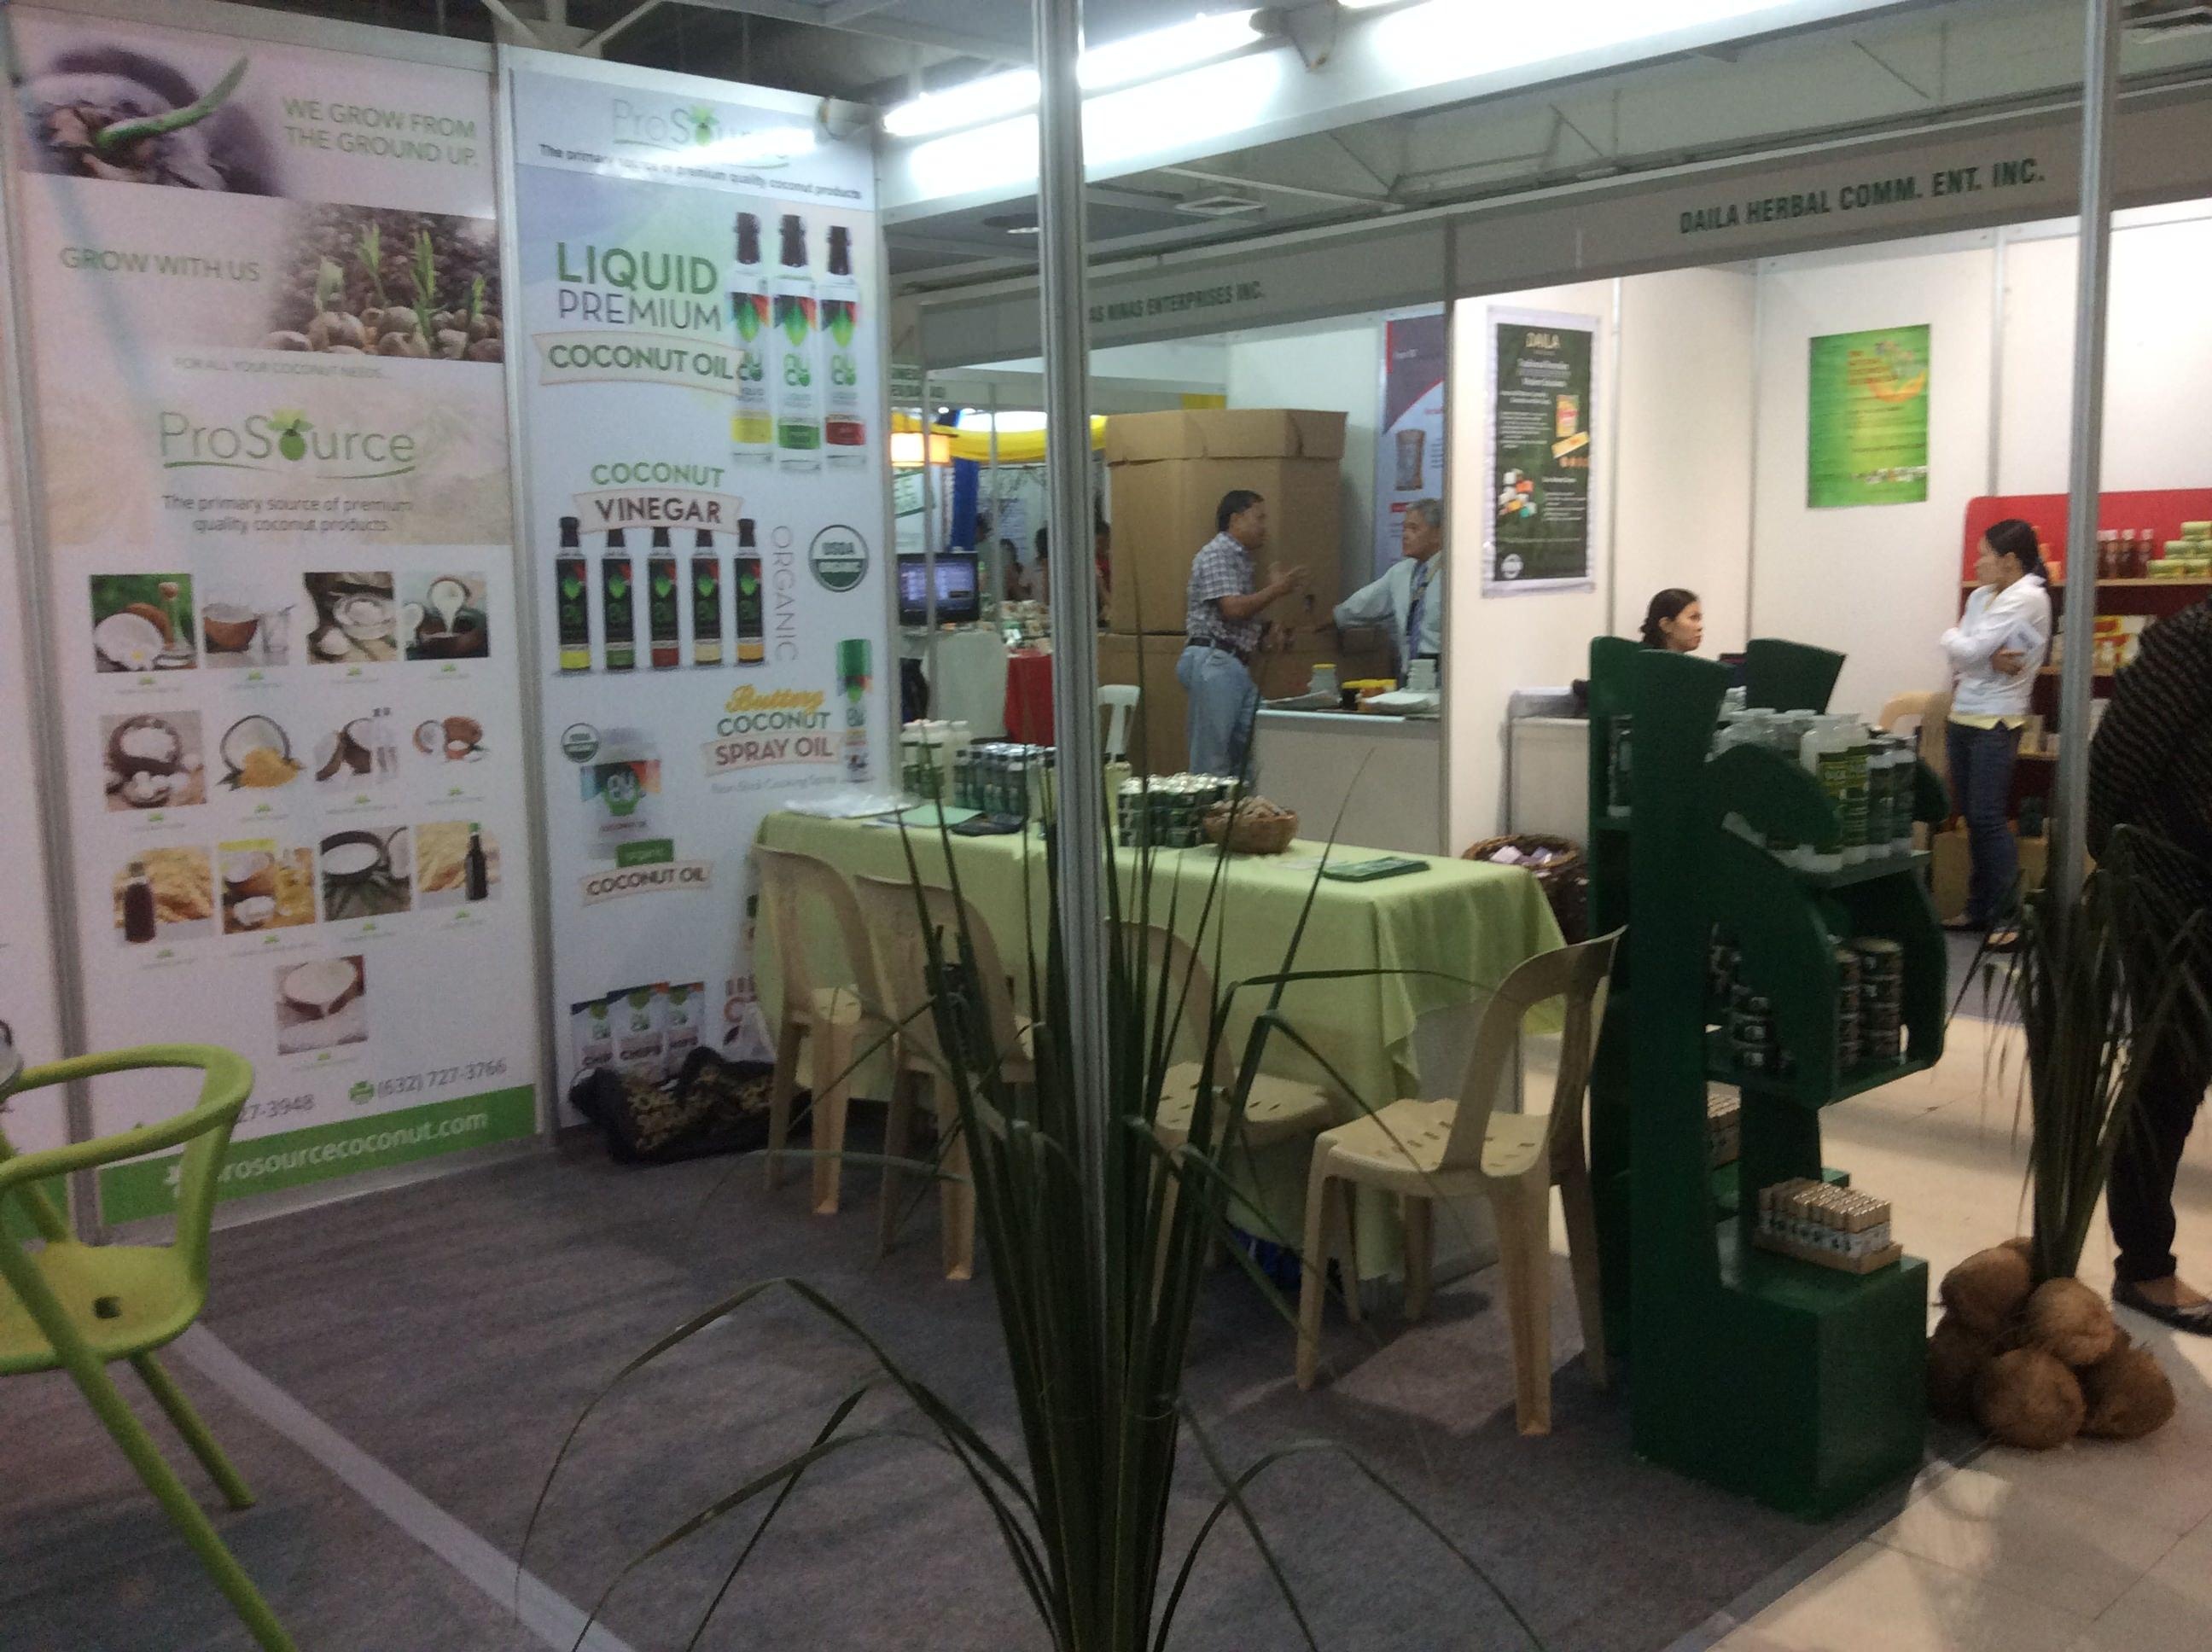 Prosource Booth at Coconut Week held at Megatrade, SM Megamall Aug 27-30, 2015